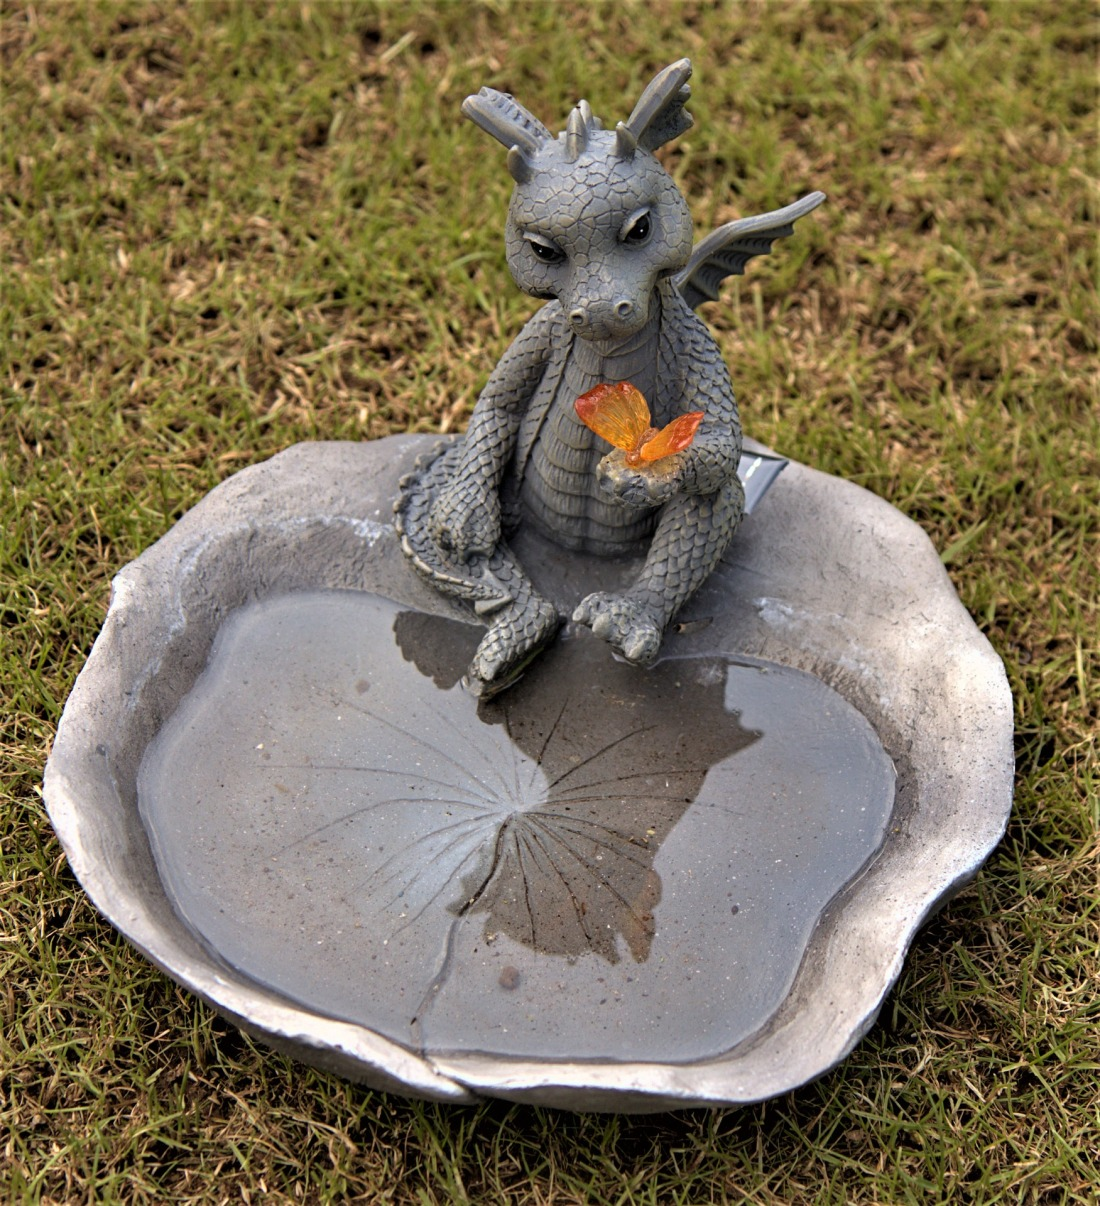 dragons-with-water-bowl-4212336_1920